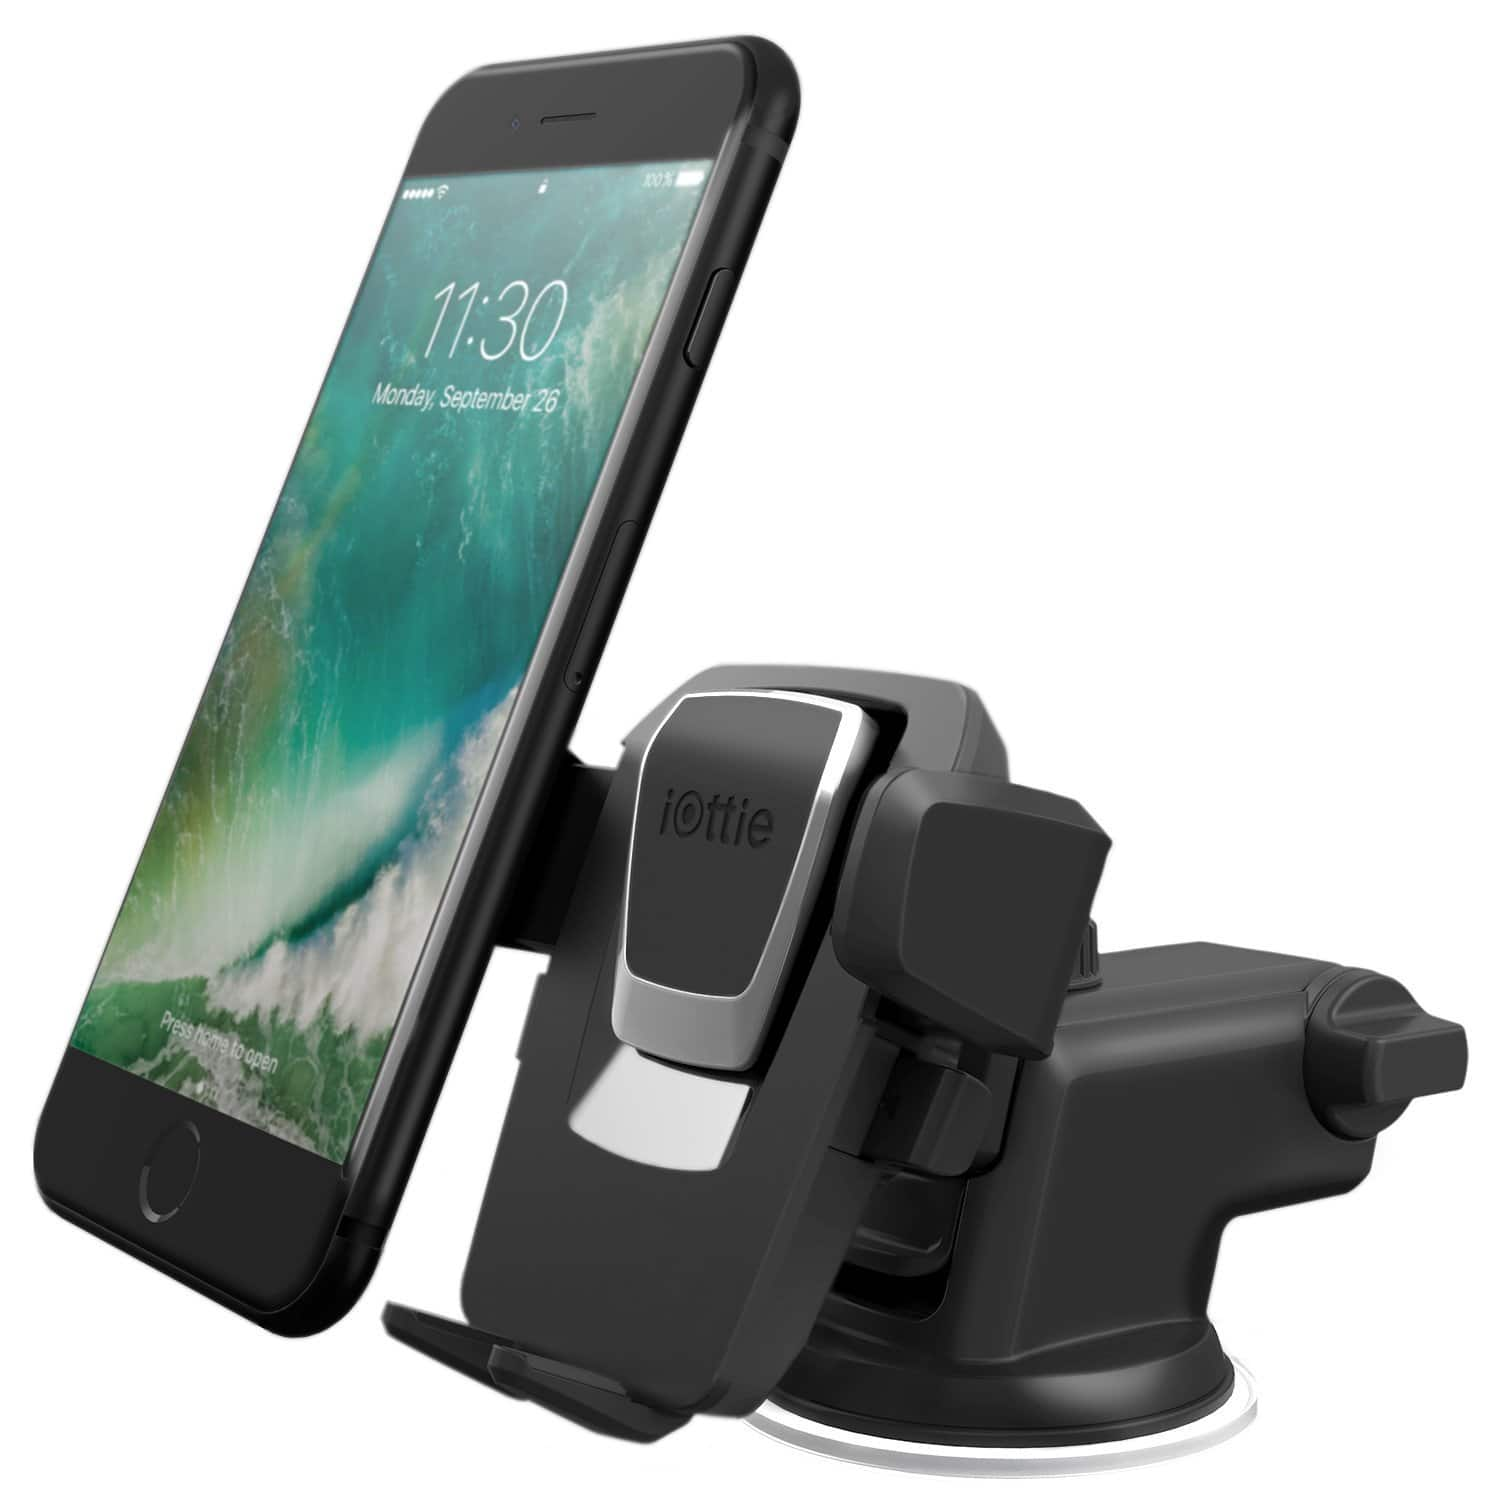 iOttie Easy One Touch 3 (V2.0) Car Mount Universal Phone Holder $12.85